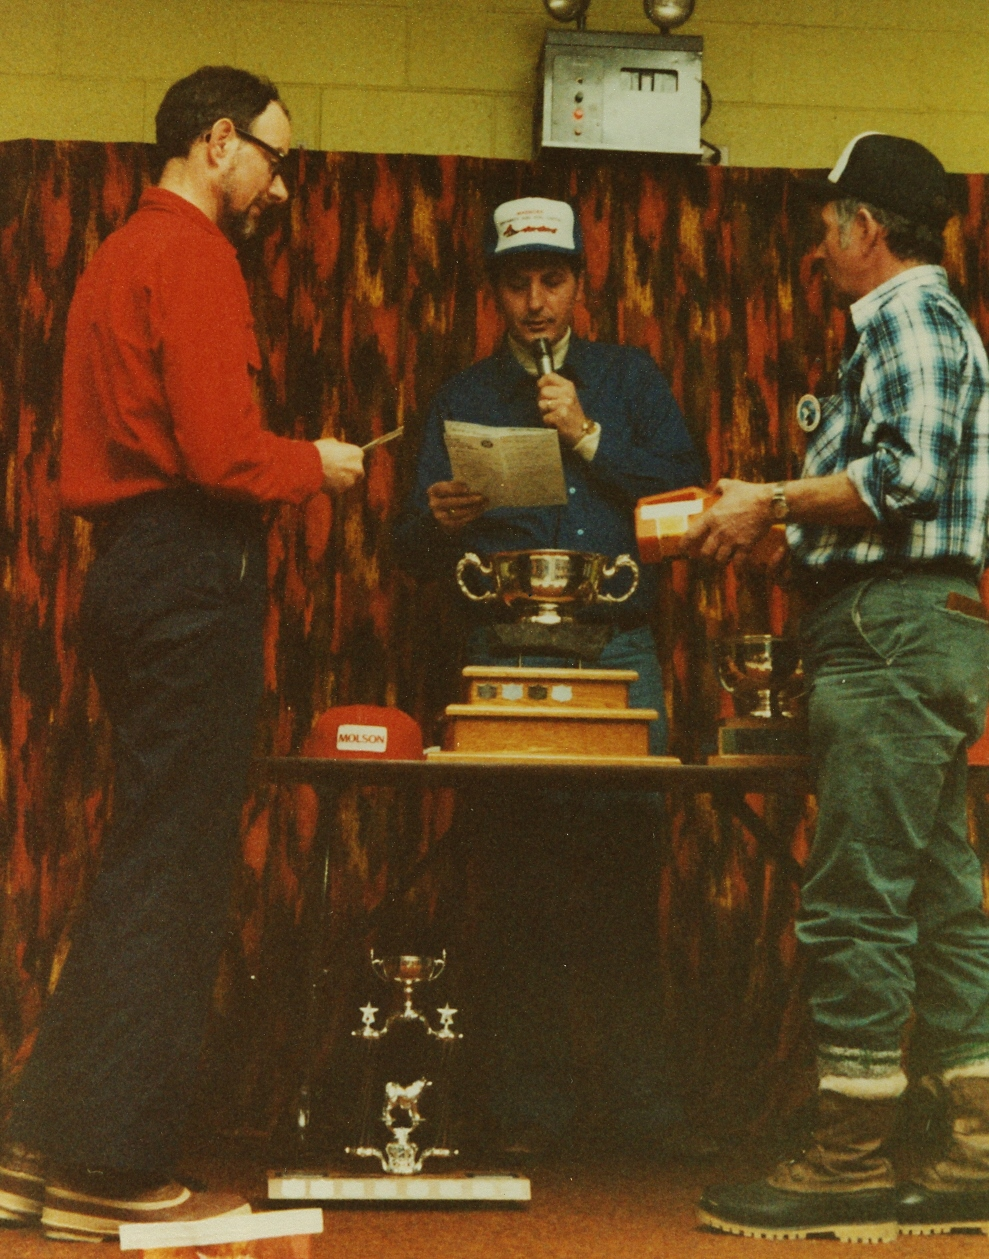 Snofest awards possibly 1984 - Copy (4).jpg